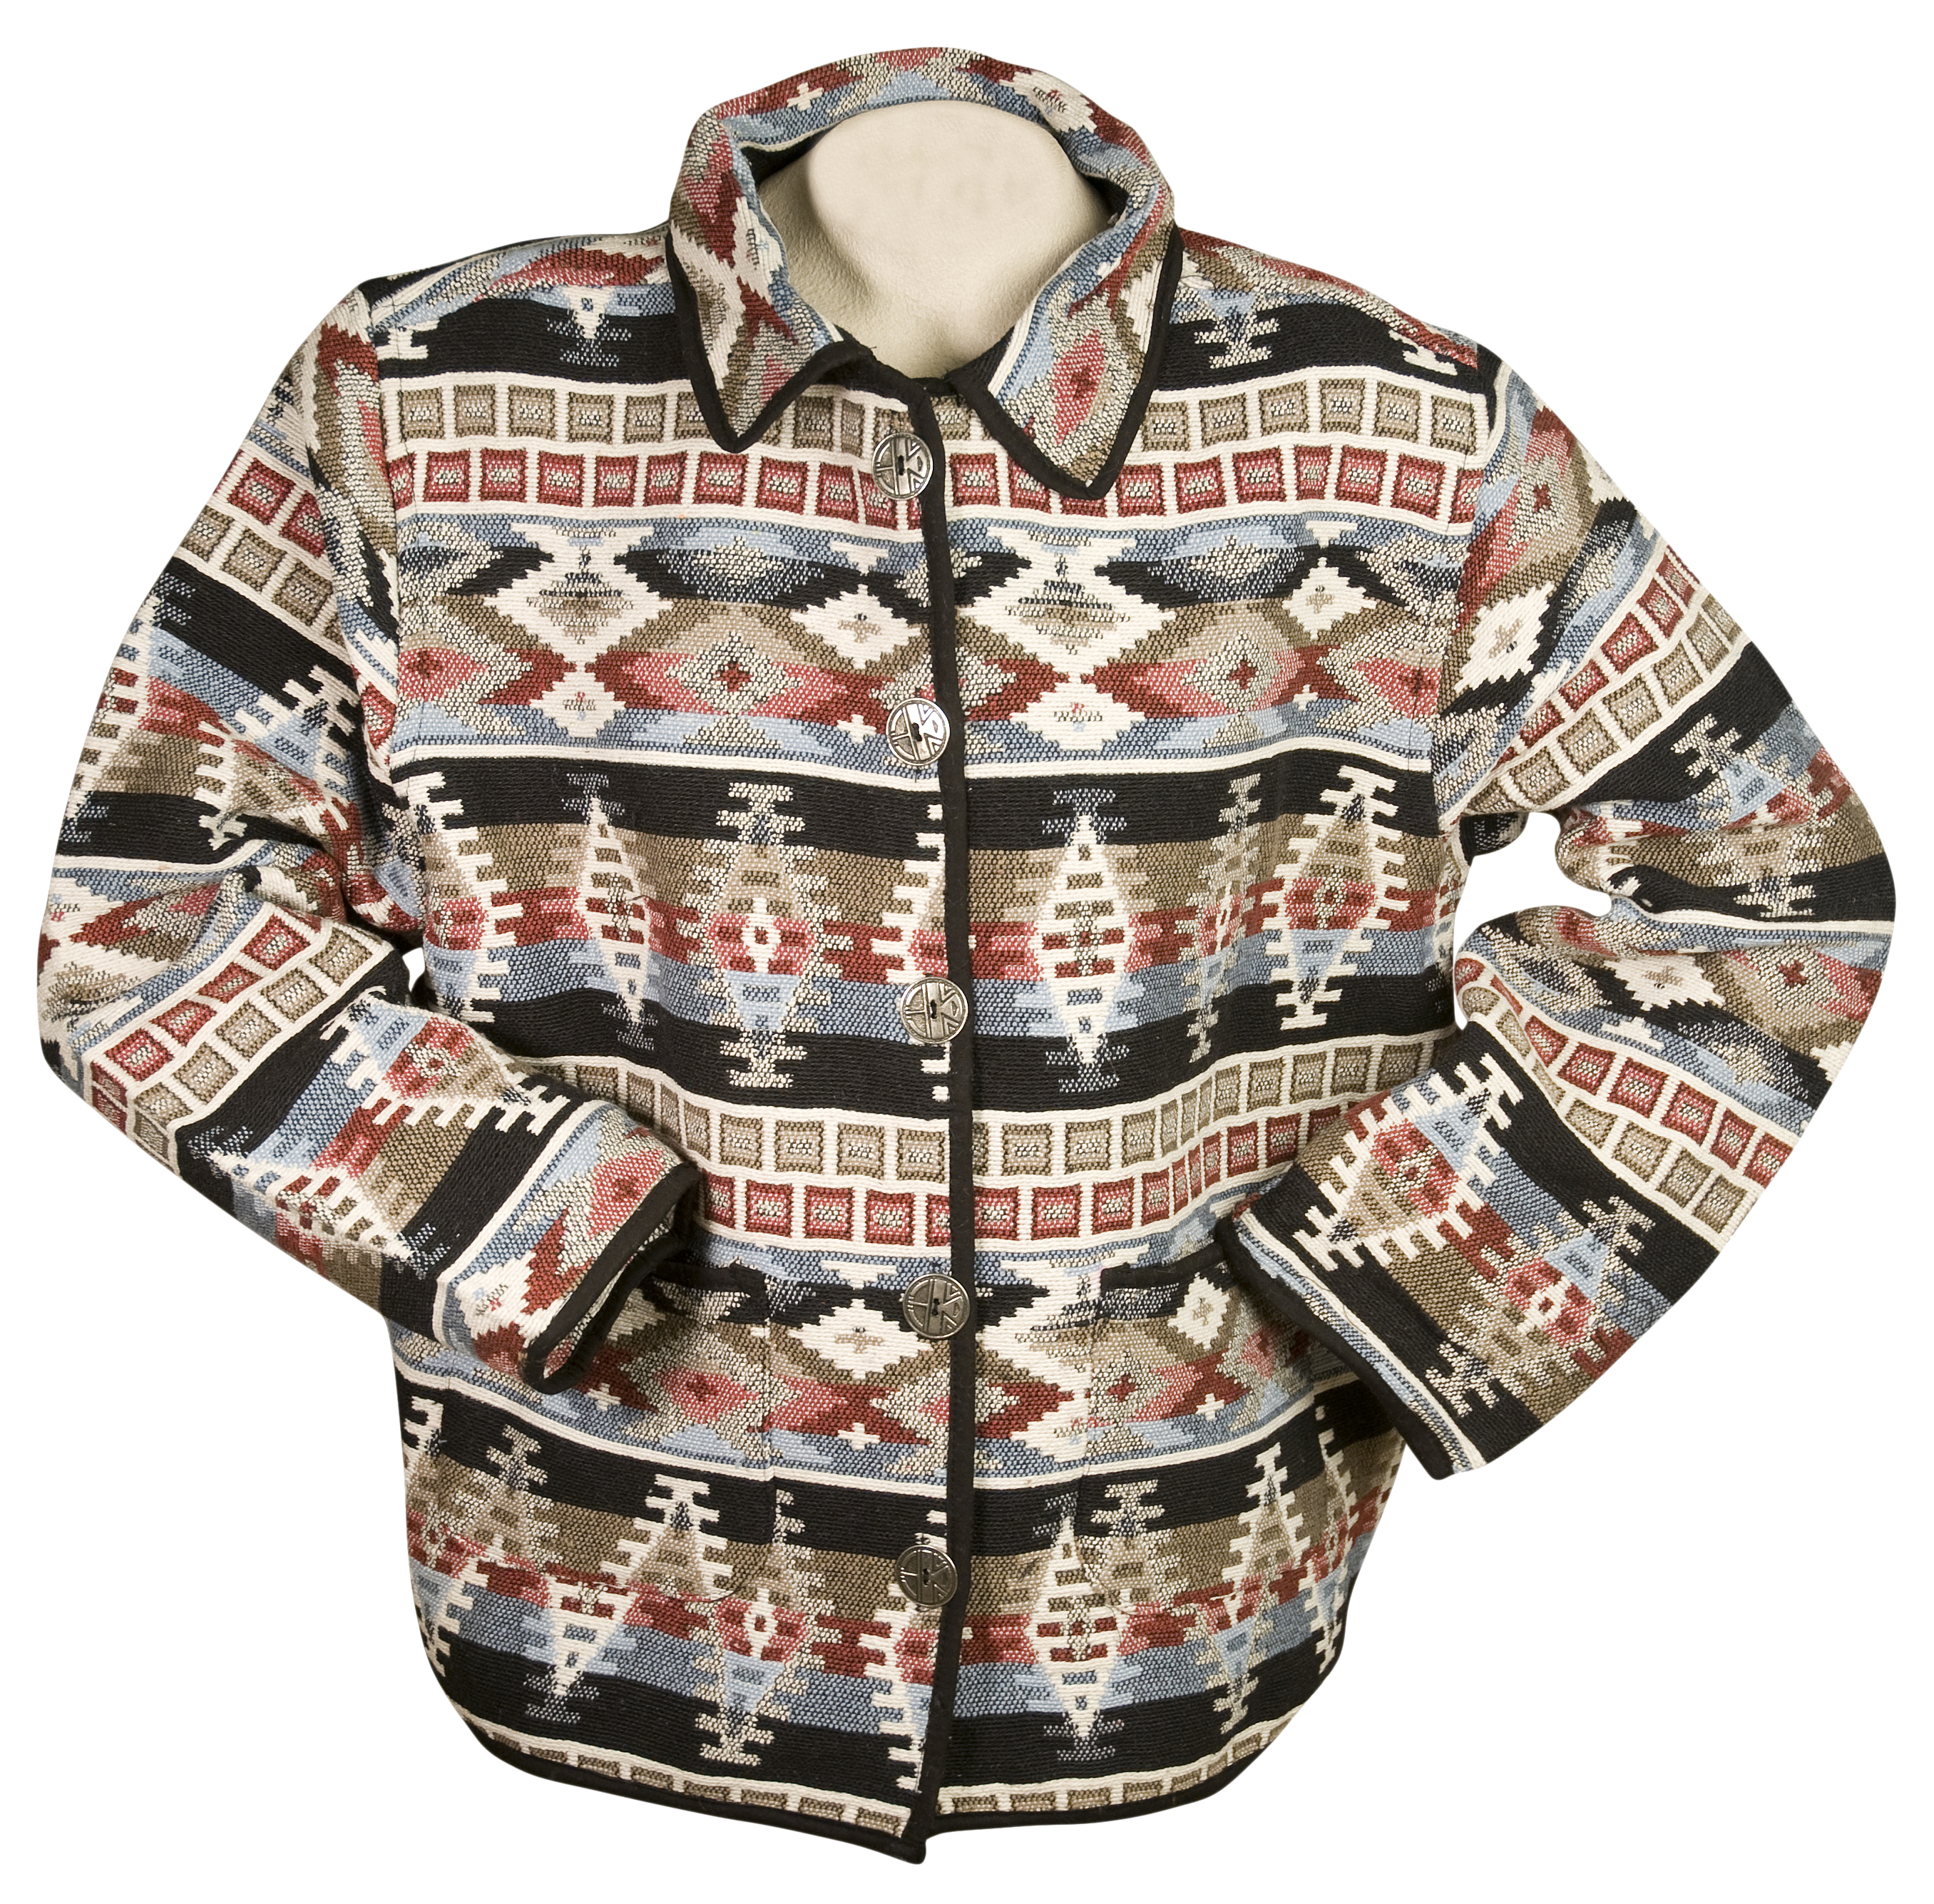 Jane Ashley 100% Cotton Southwest Jacket